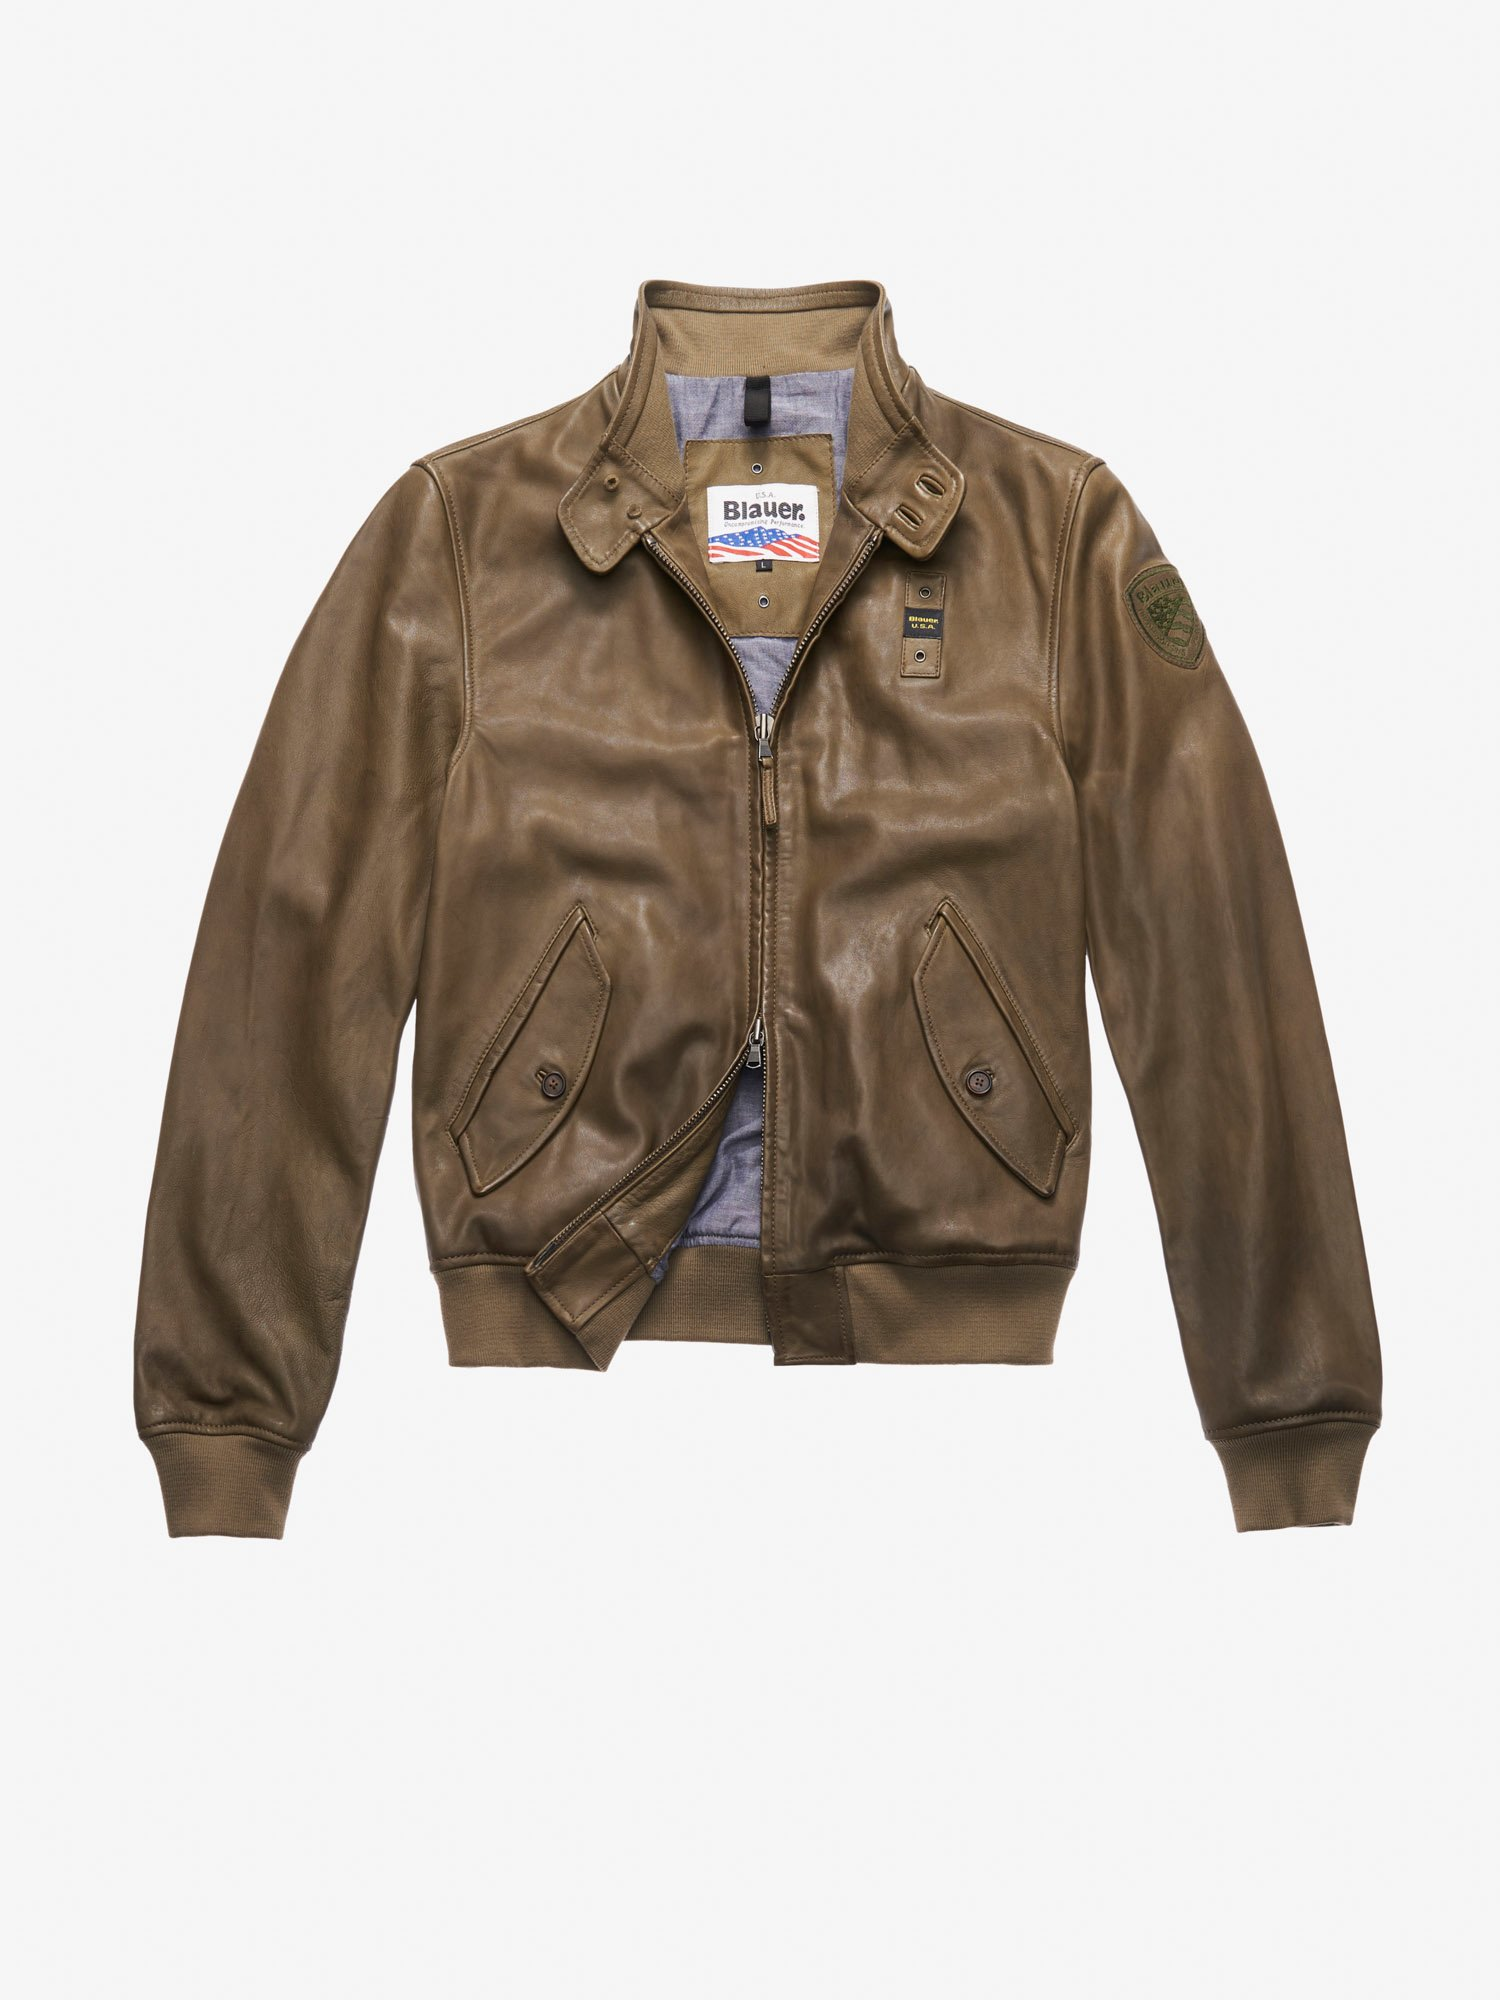 Blauer - BOMBER DE PIEL CON CUELLO WILLIAMS - Dark Green - Blauer